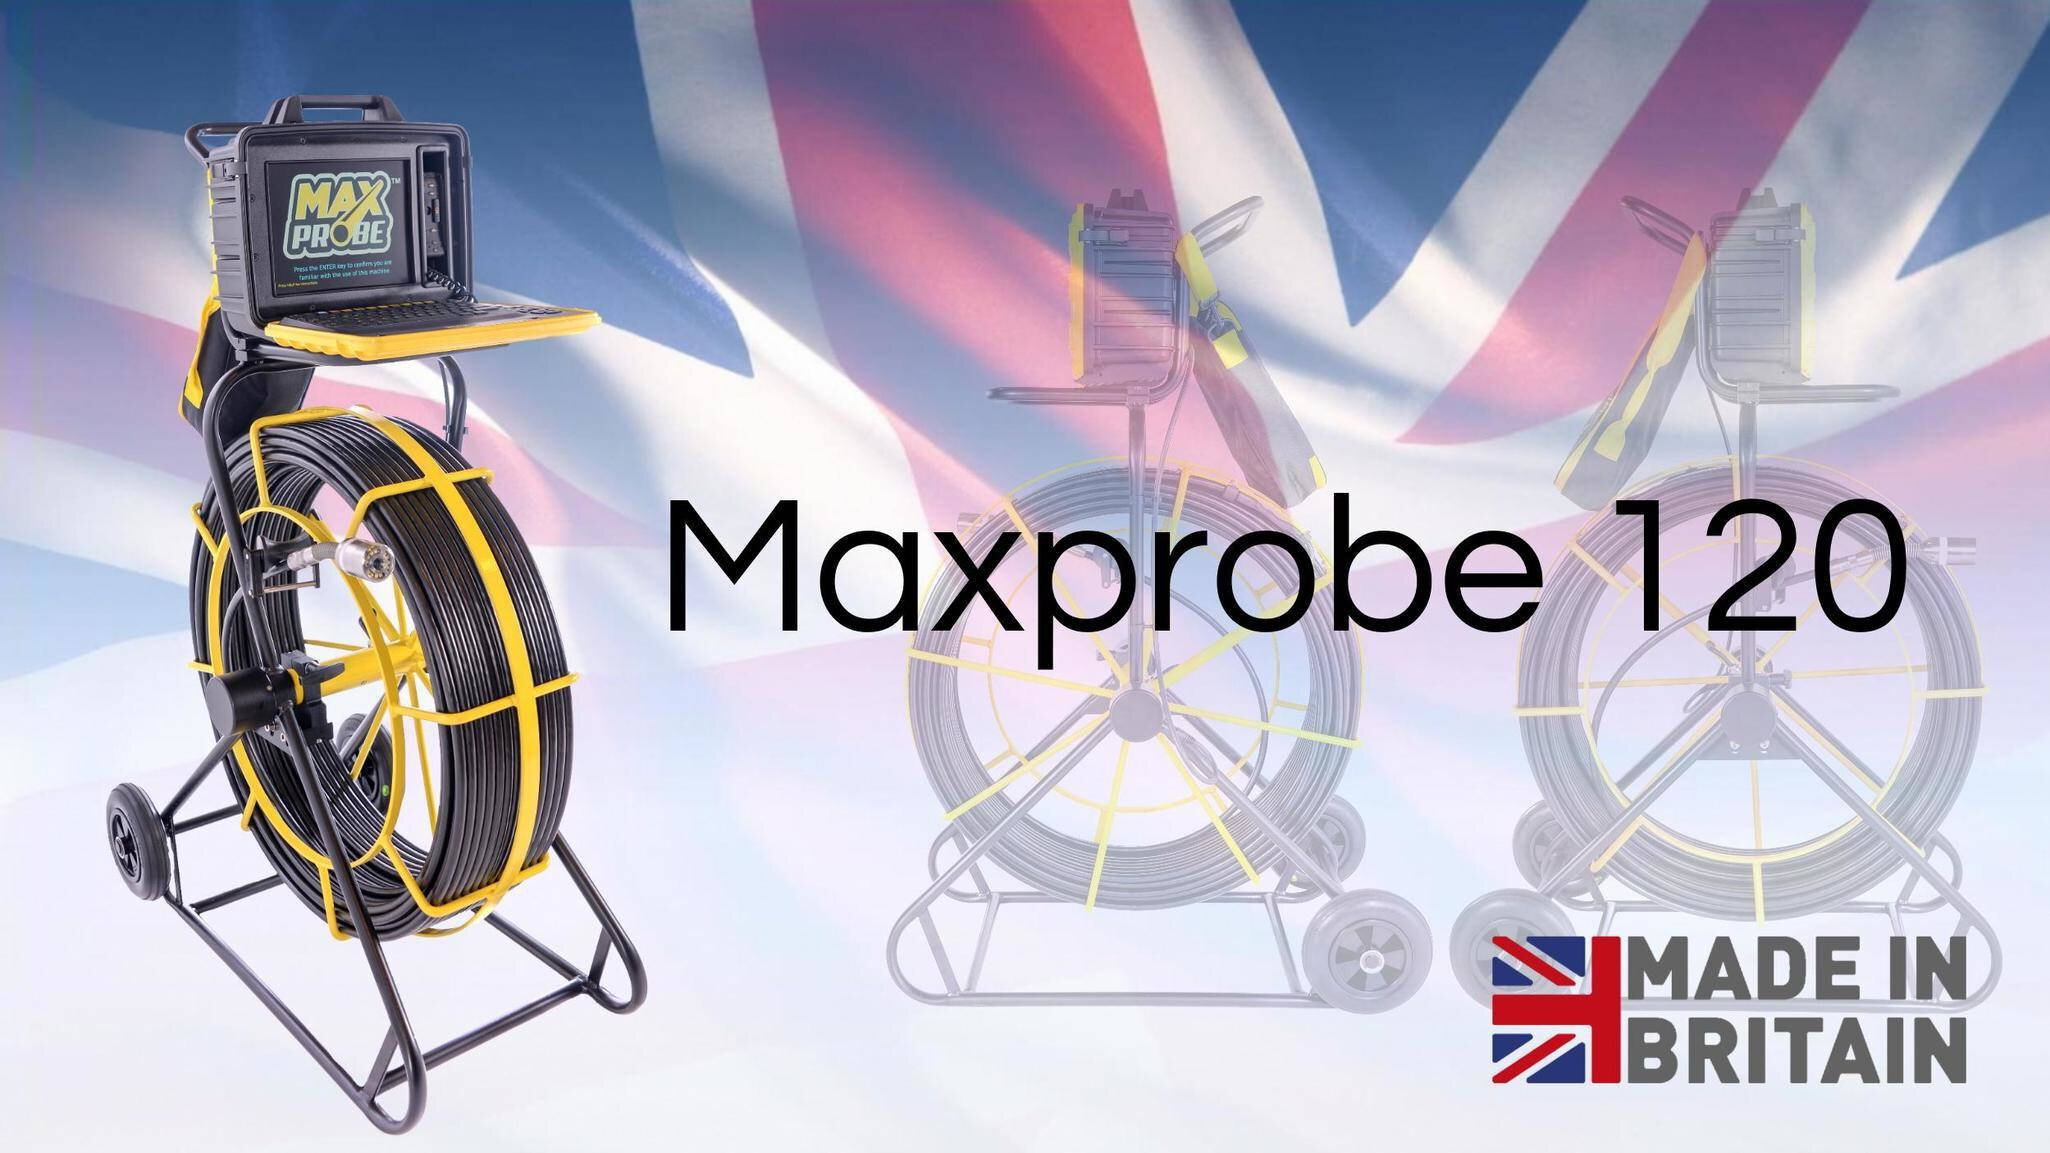 Gallery image 3 - The Maxprobe 120: * 120 metres * Built-in survey reporting software   - create PDF reports on site   - no subscription required * Self-levelling camera * Manufactured in the UK  See more here: https://www.scanprobe.com/product/maxprobe-120/